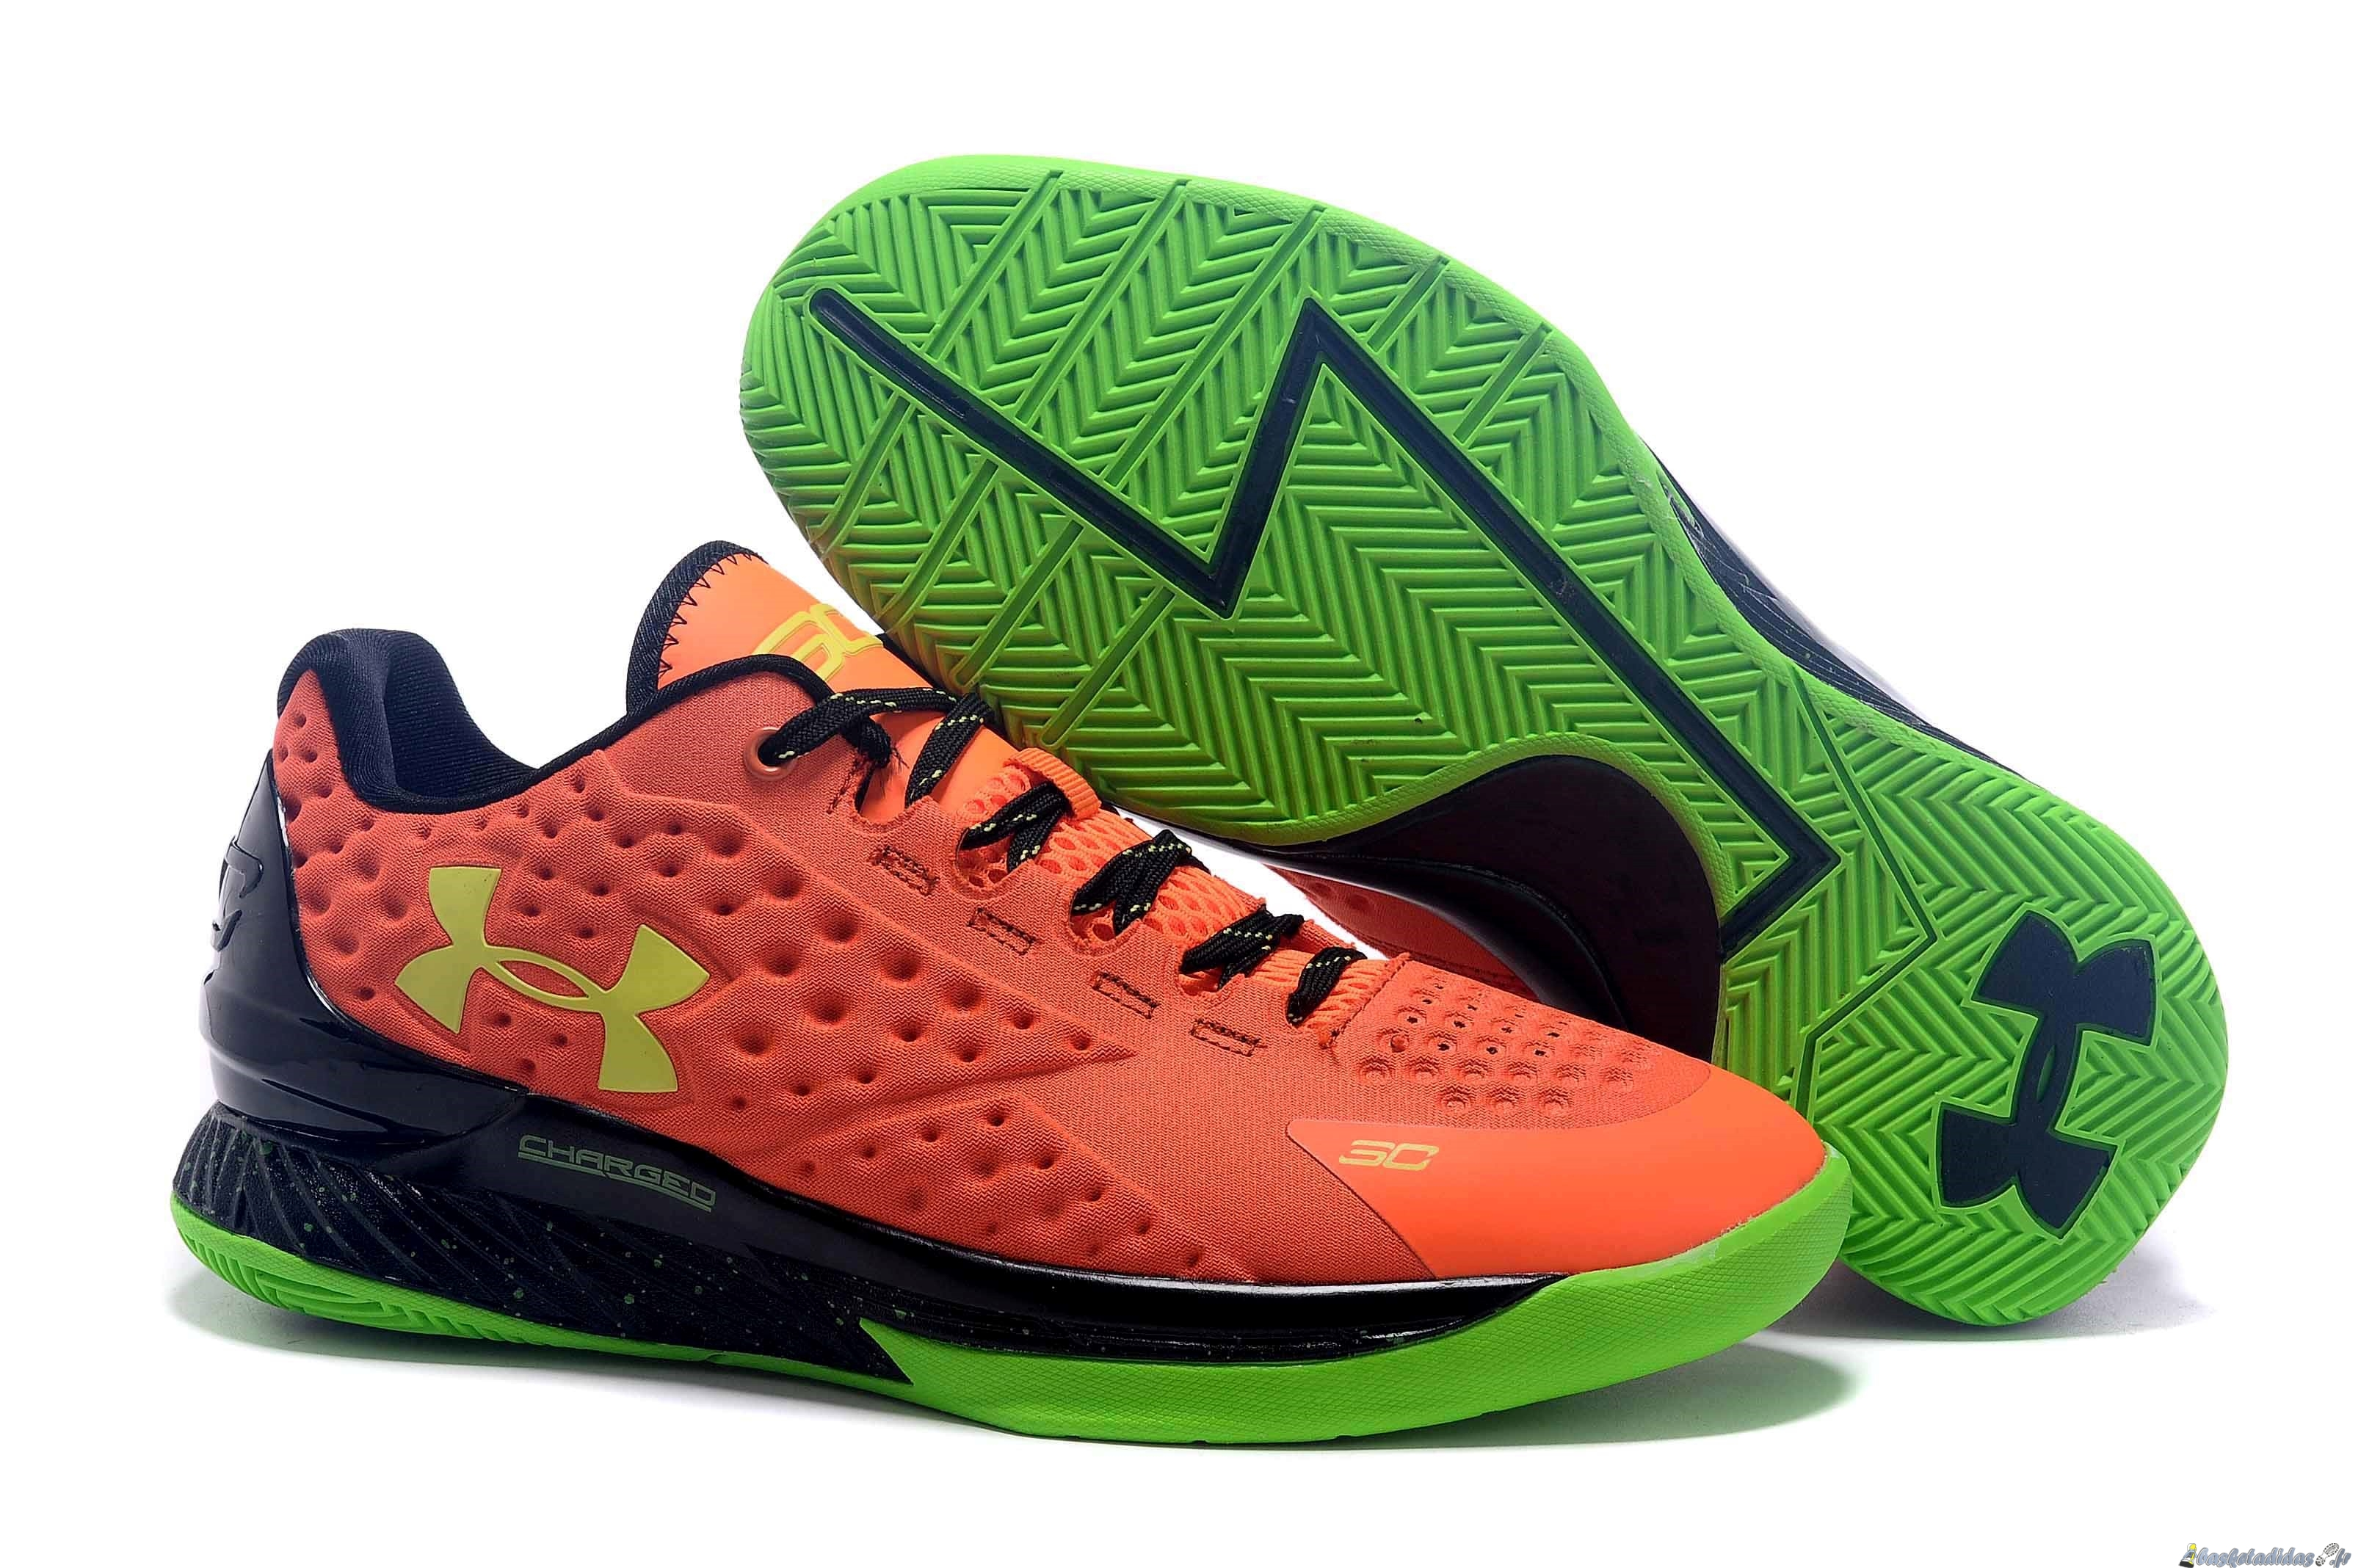 Chaussure de Basket Stephen Curry 1 Femme Orange Vert